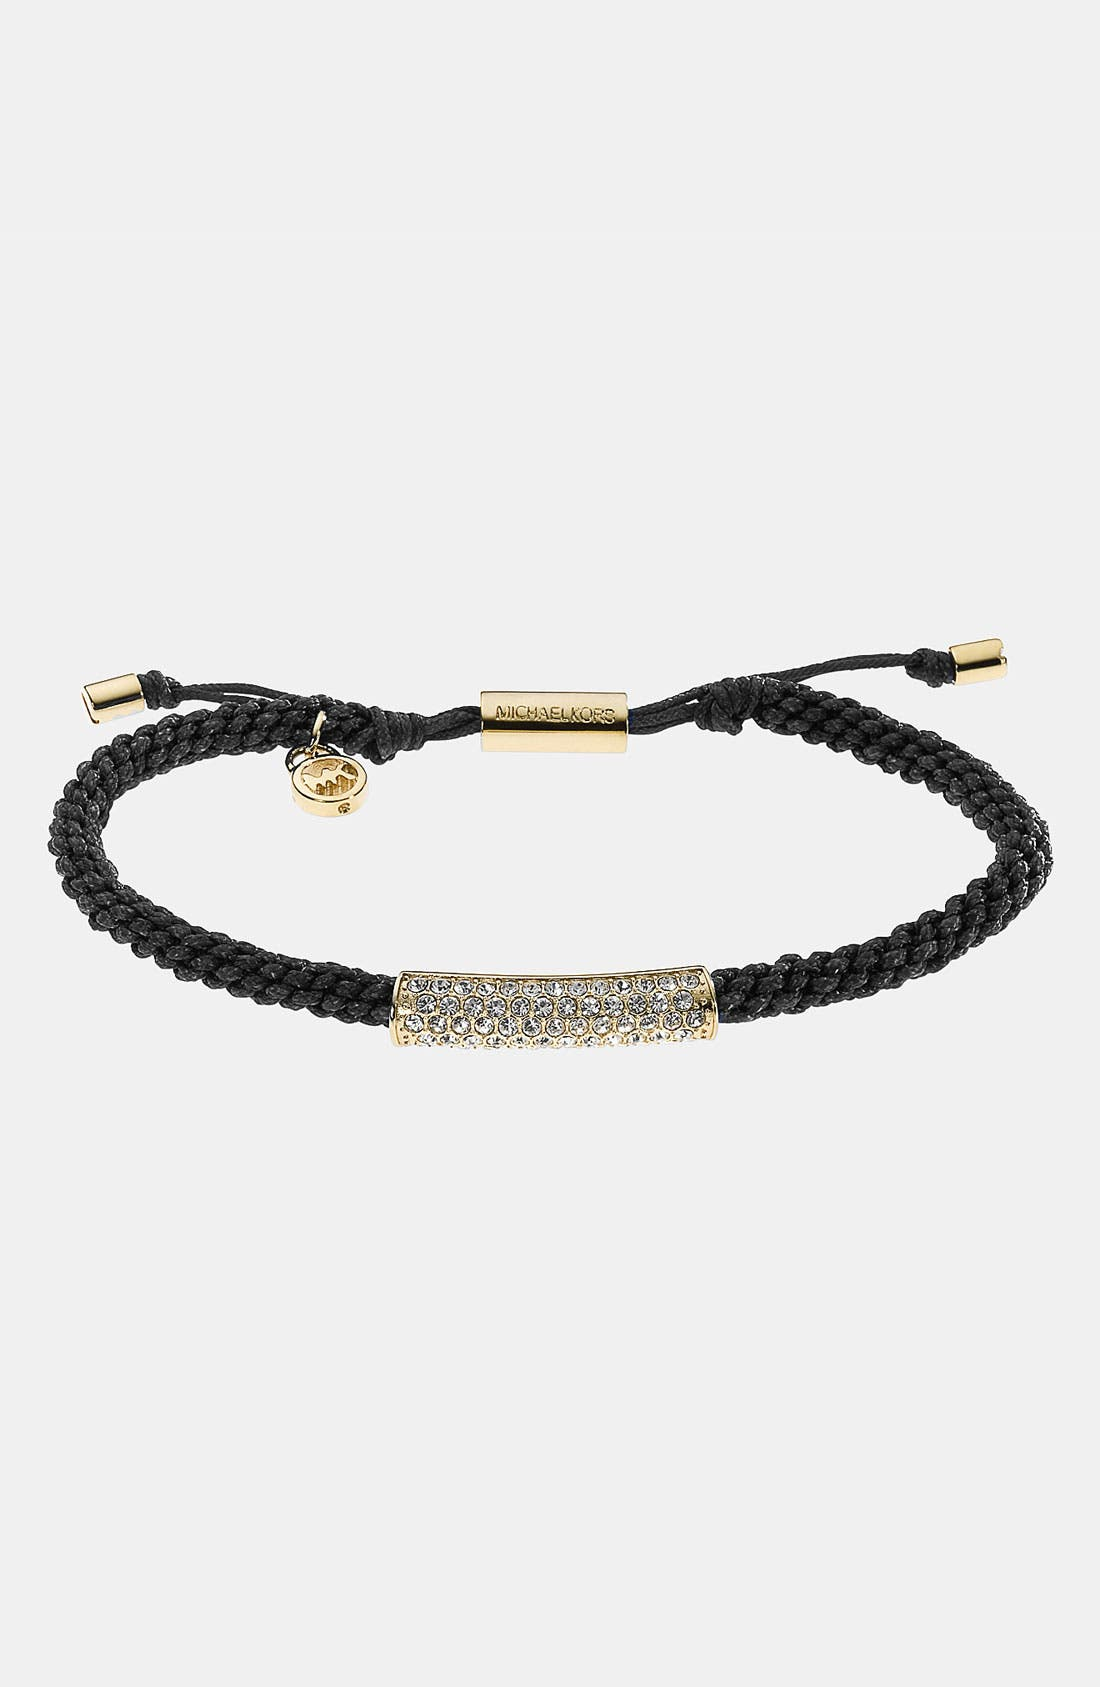 Alternate Image 1 Selected - Michael Kors 'Brilliance' Macramé Bracelet